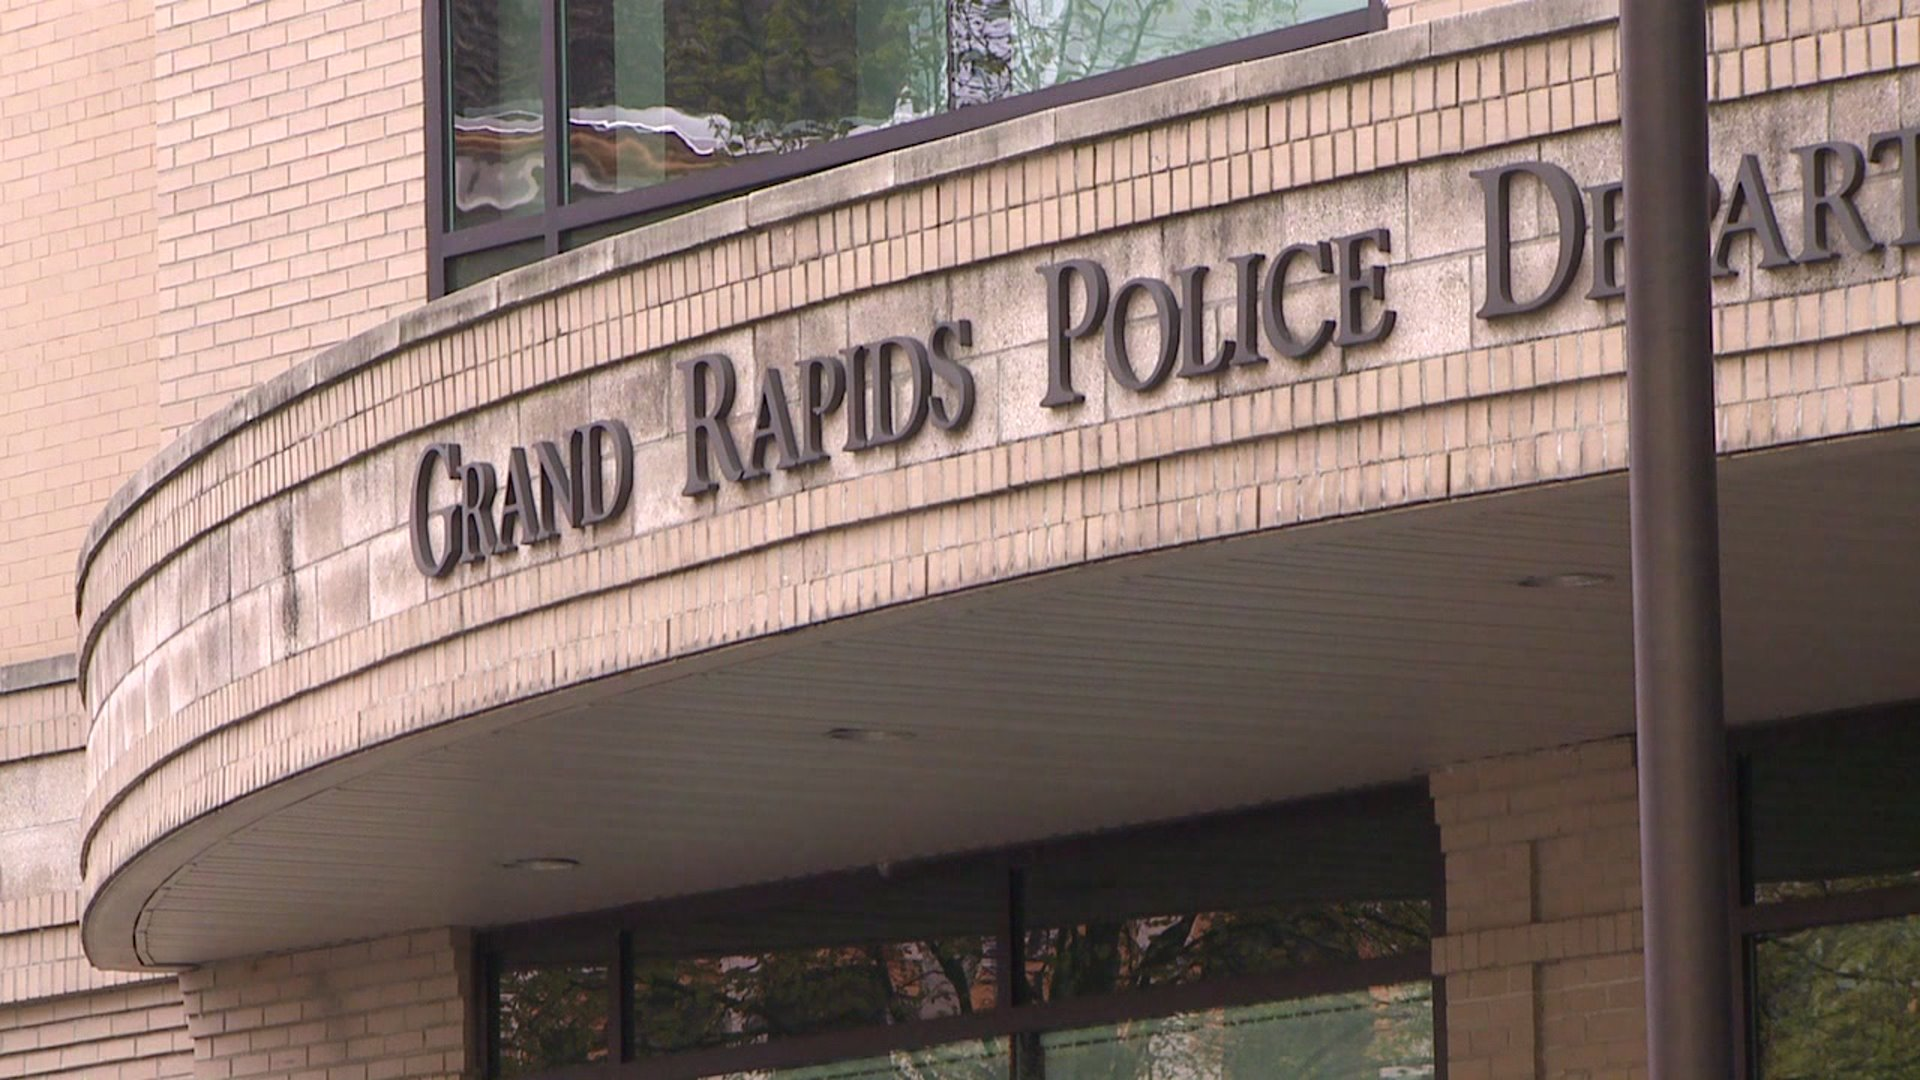 Grand Rapids police to commemorate National Crime Victims' Rights Week